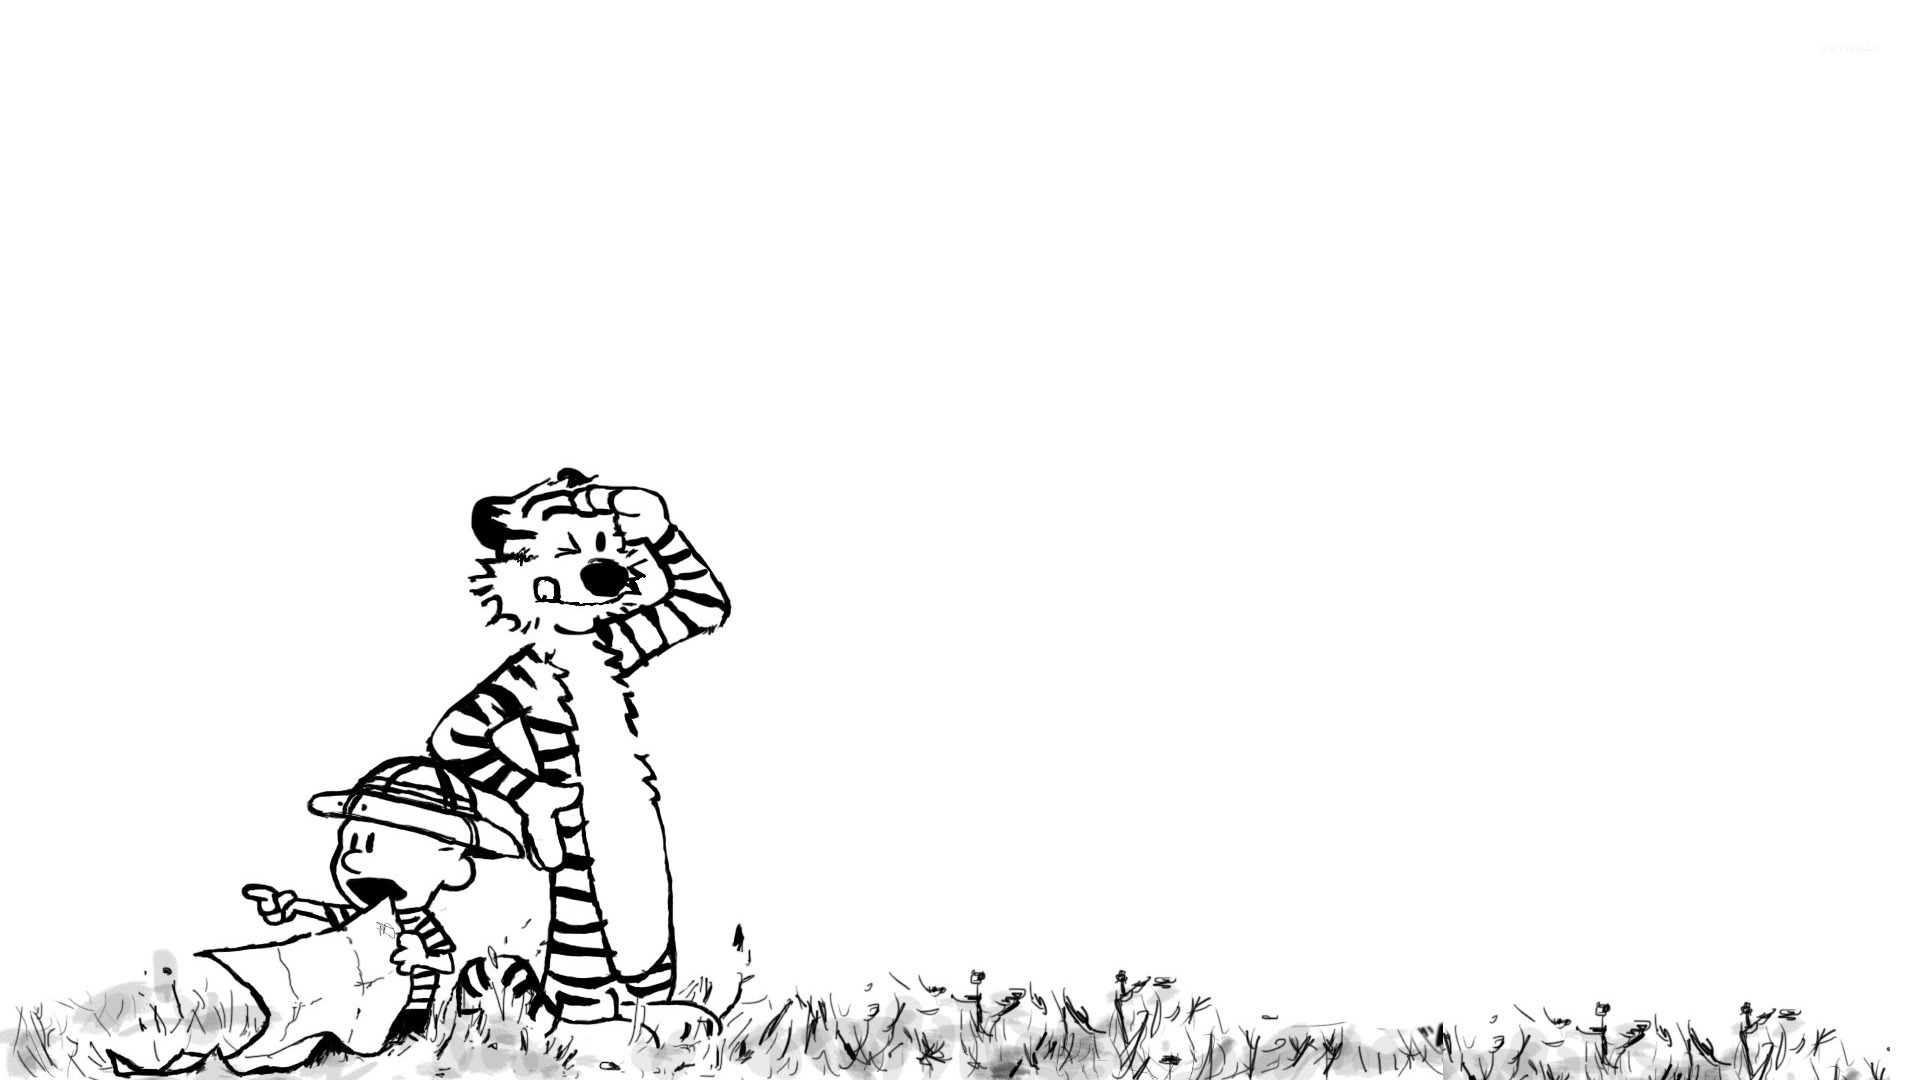 Free Download Calvin And Hobbes Wallpaper 1920x1080 Calvin And